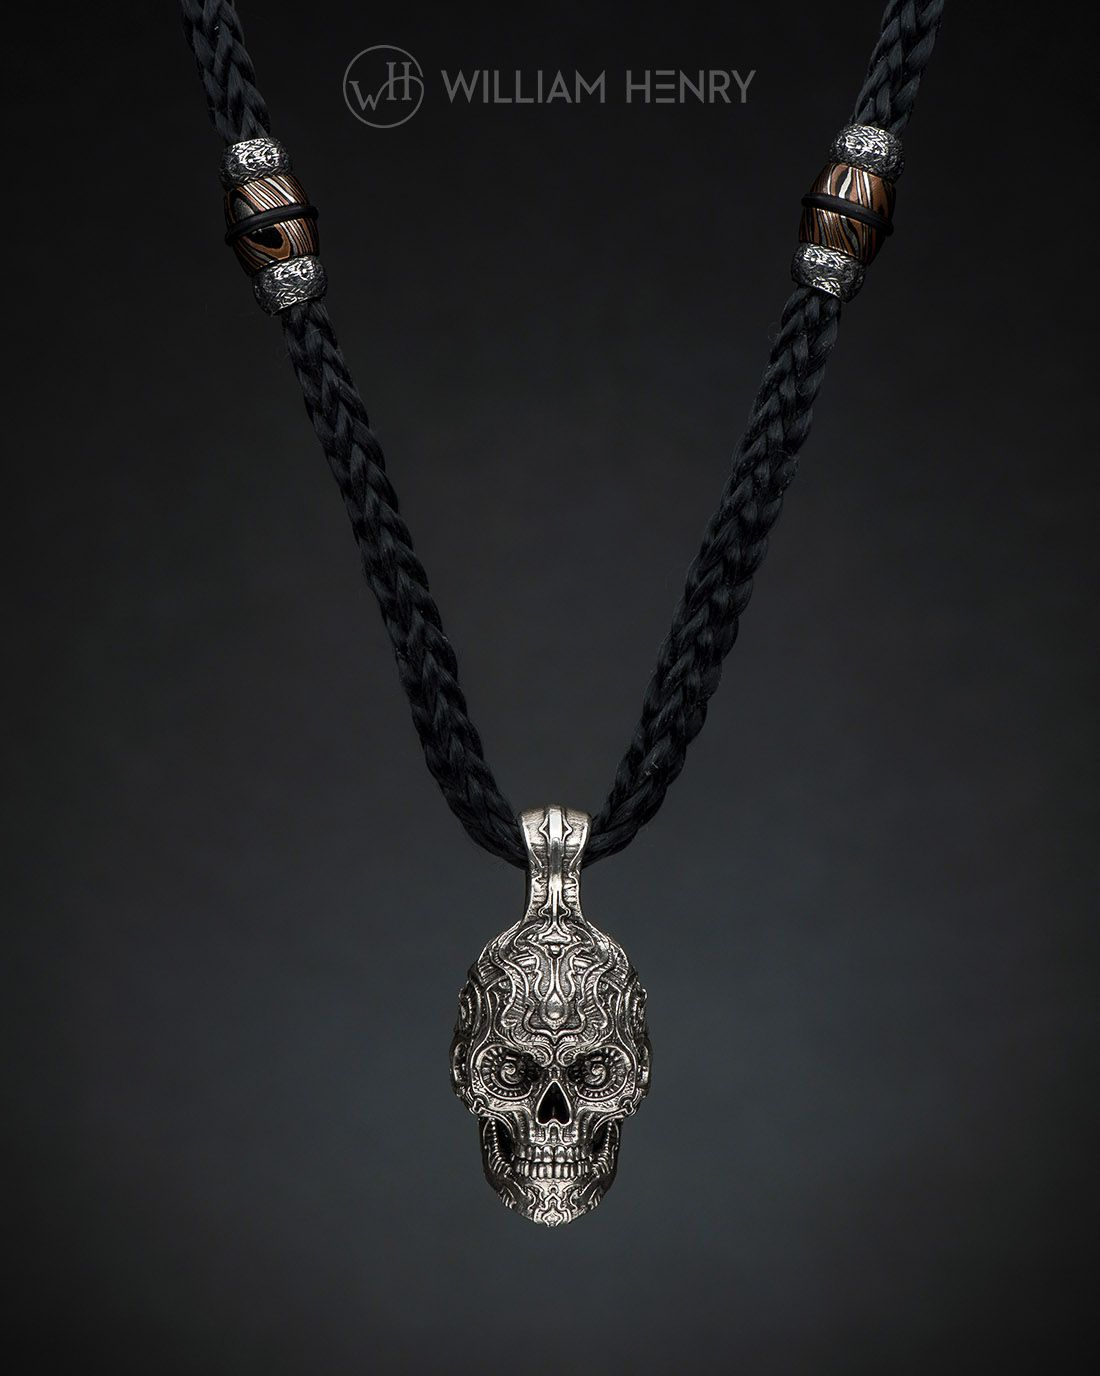 Badass silver skull pendant on kevlar cord with insets in badass silver skull pendant on kevlar cord with insets in sterling silver and mokume gane mozeypictures Image collections